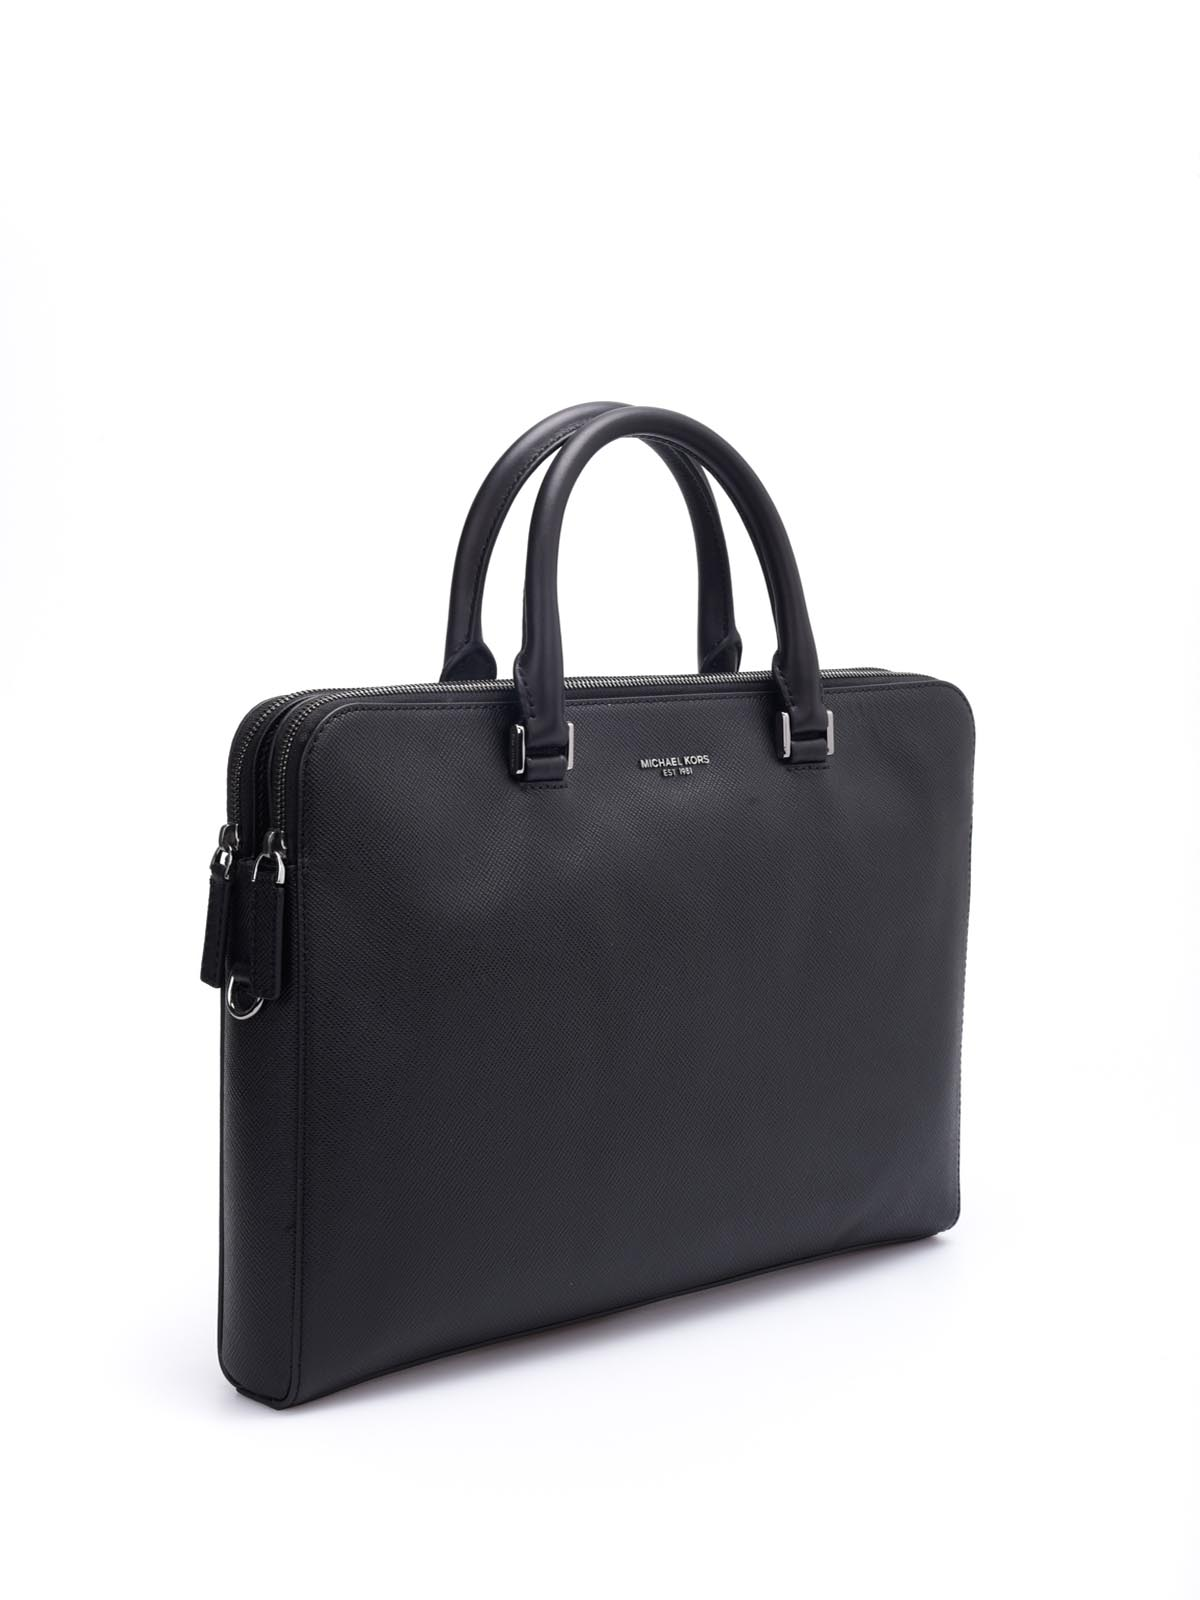 Michael Kors Laptop Bags Briefcases Online Leather Briefcase